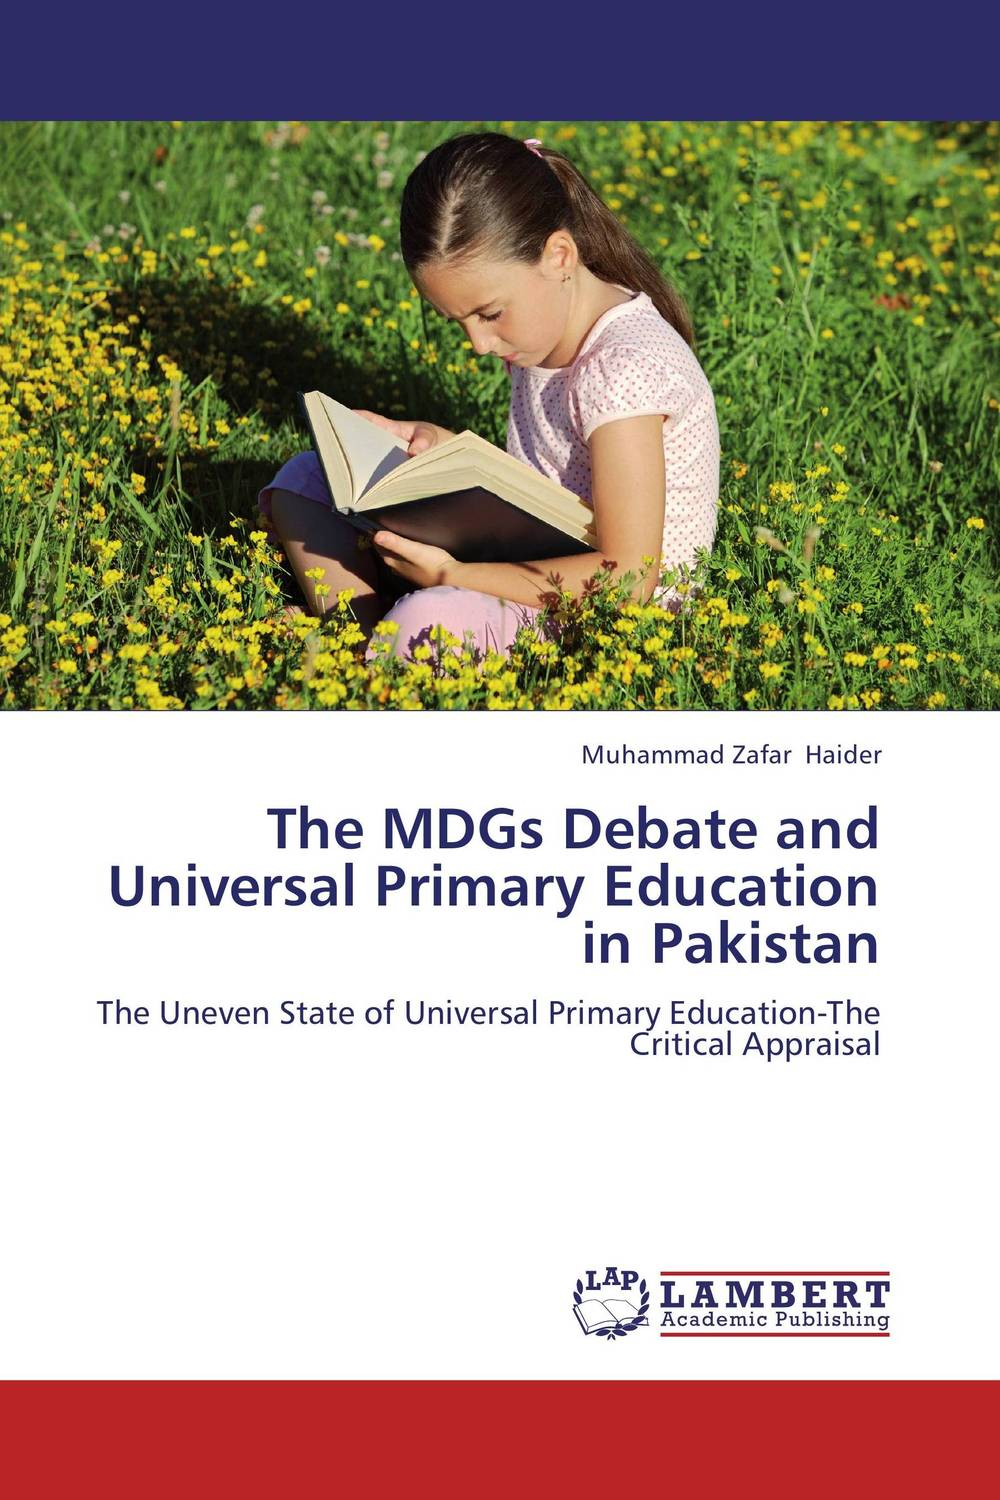 The MDGs Debate and Universal Primary Education in Pakistan distance education in pakistan